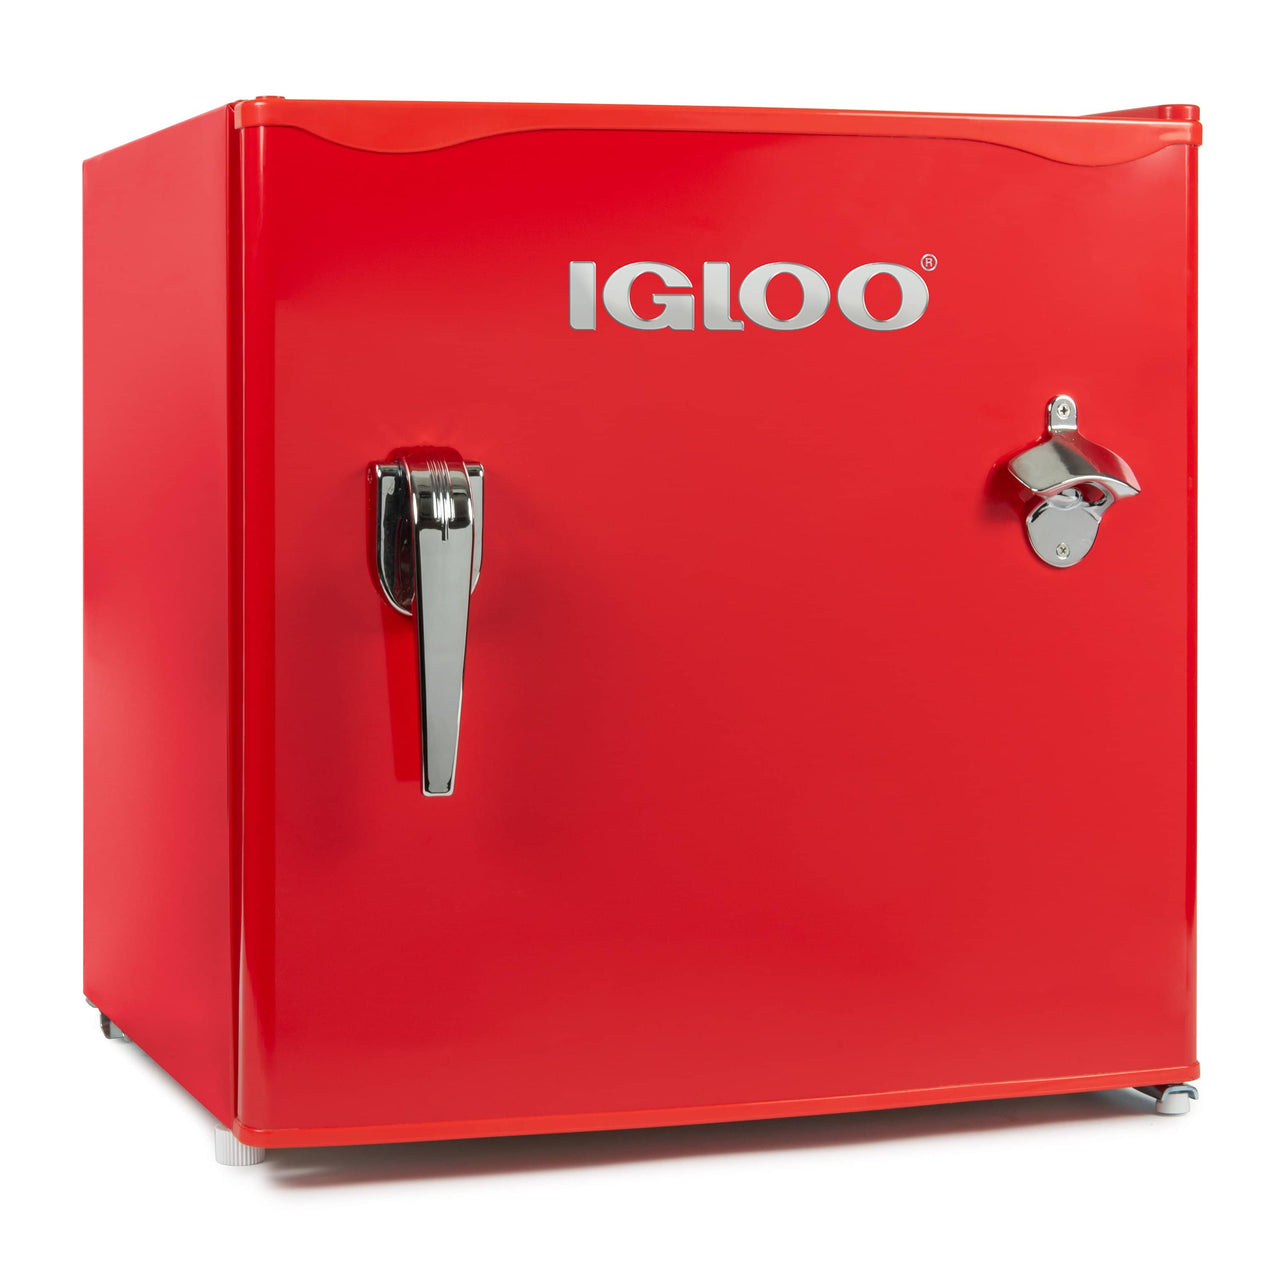 IGLOO® 1.6 Cu. Ft. Classic Compact Single Door Refrigerator Freezer w/ Chrome Handle & Bottle Opener - Red